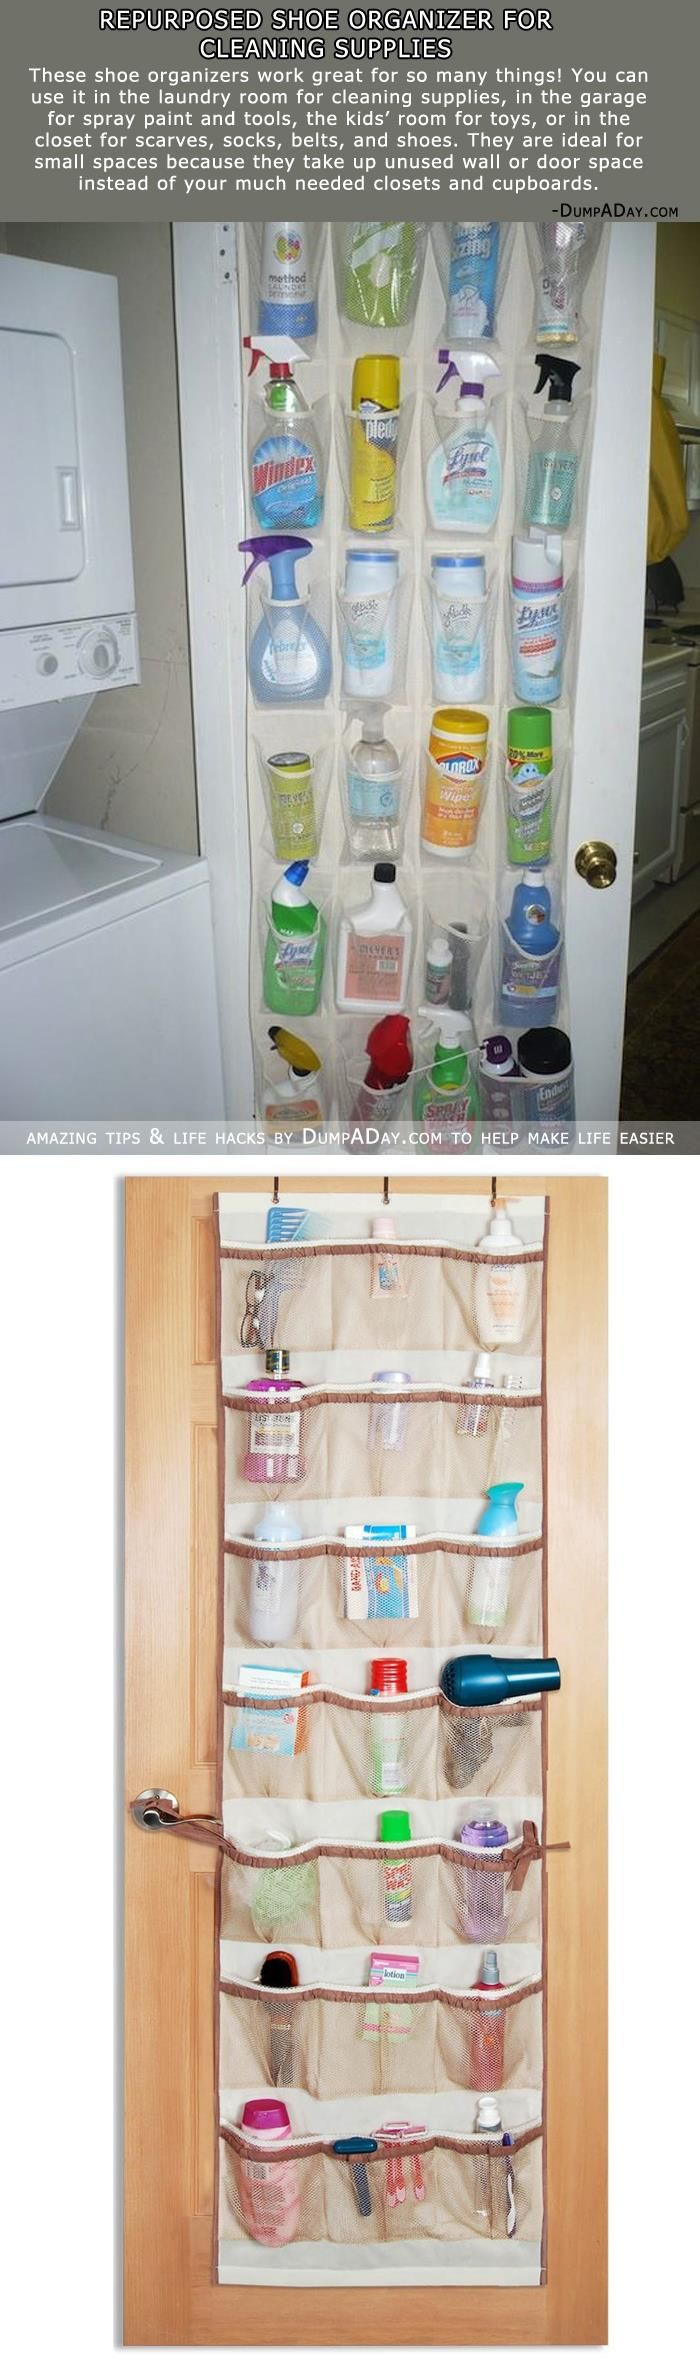 Repurposed Shoe Organizer For Cleaning Supplies